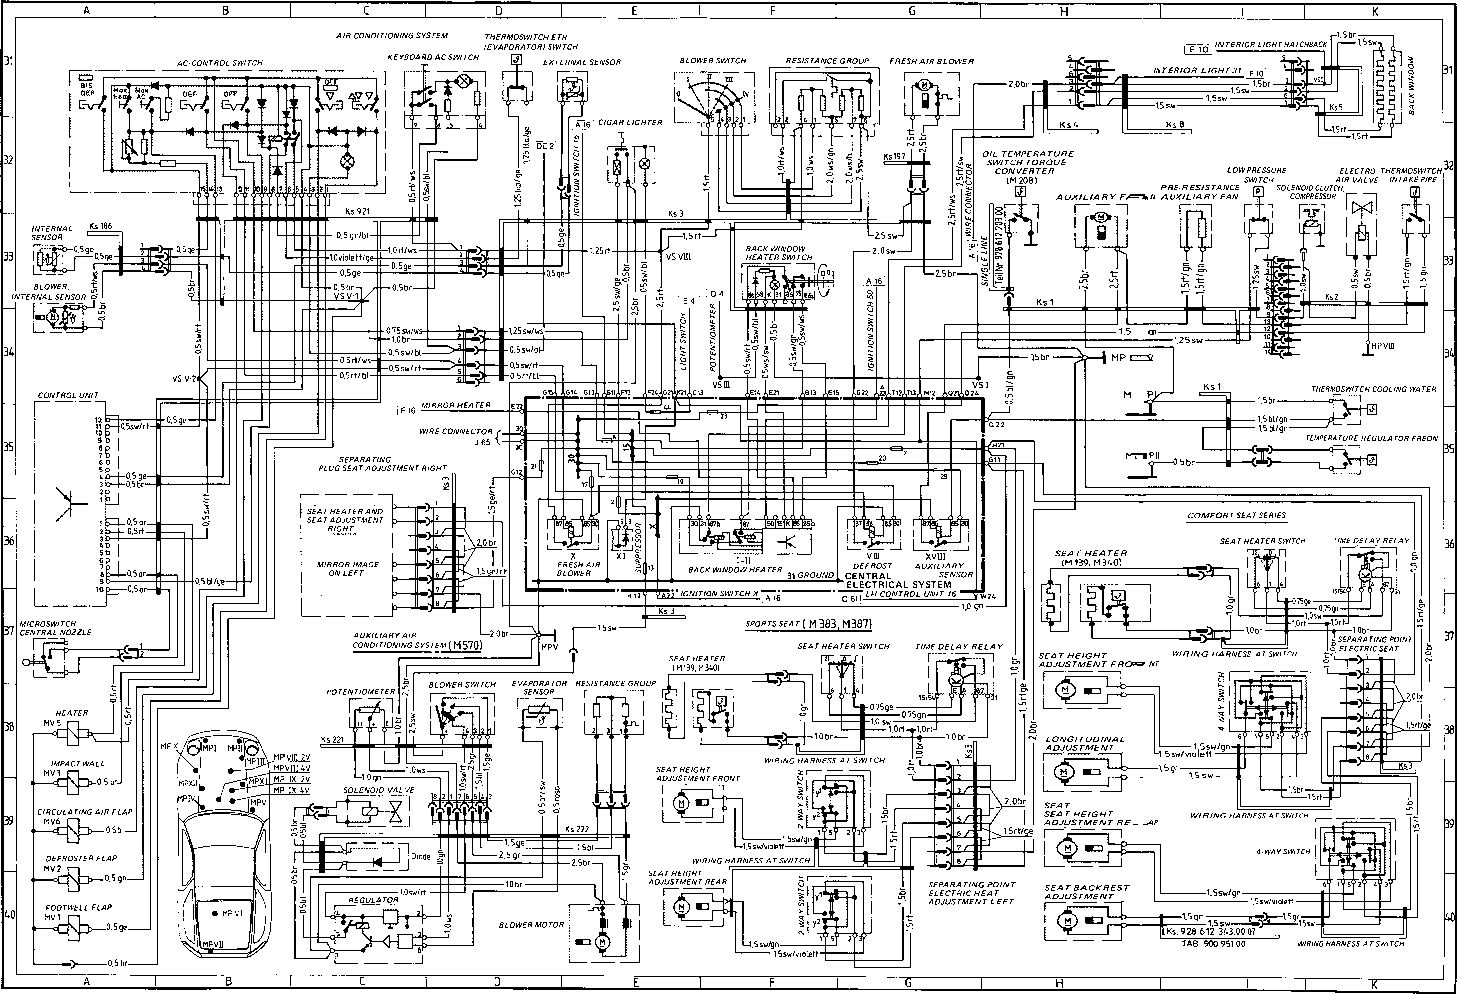 Heating System Diagram Likewise Wiring Also How To Replace A 1985 Pace Arrow Type 928 S Model 86 Page Porsche Repair Rh Porscherepair Us